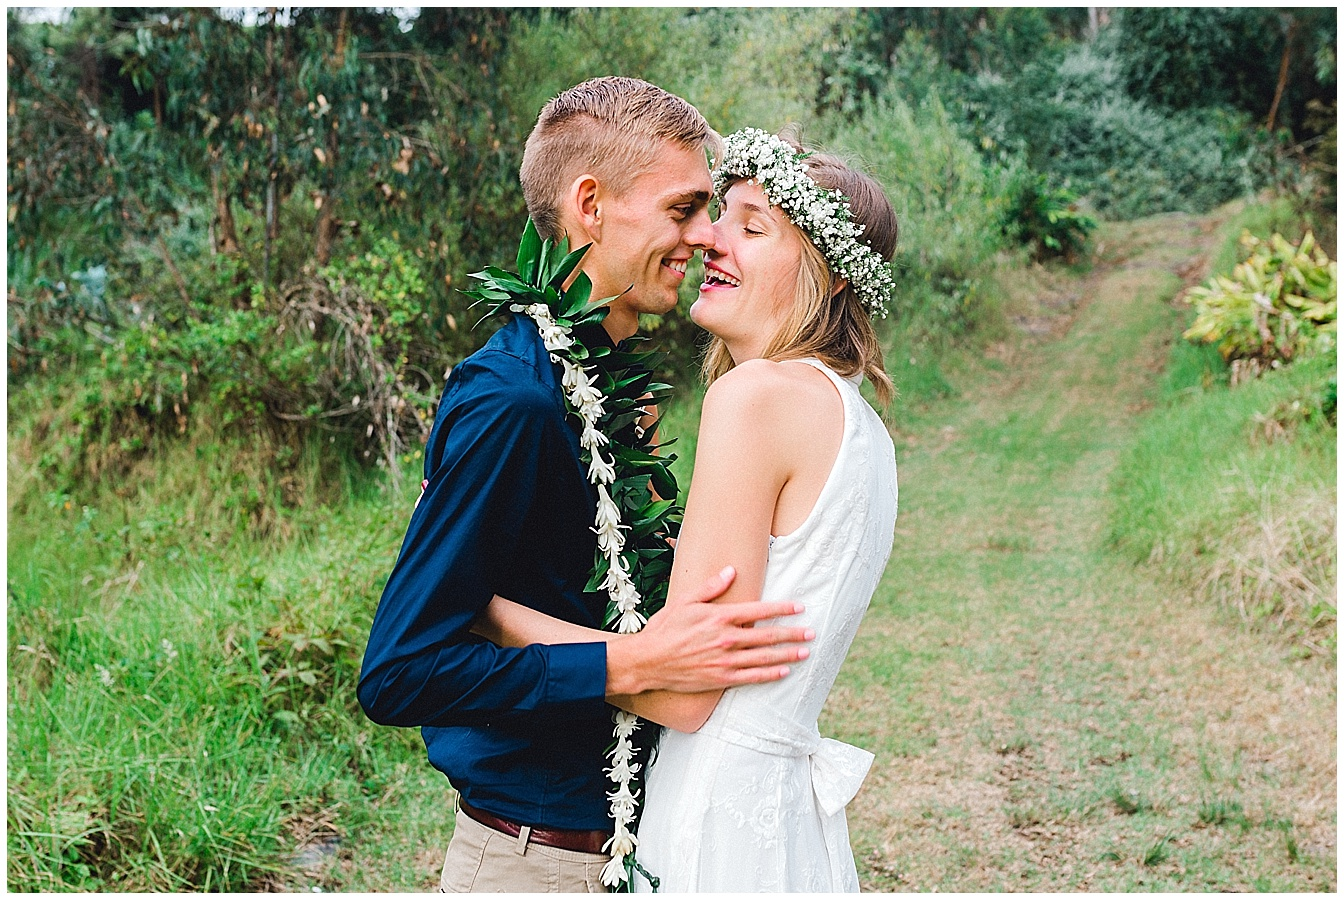 Maui bride and groom share a secret moment